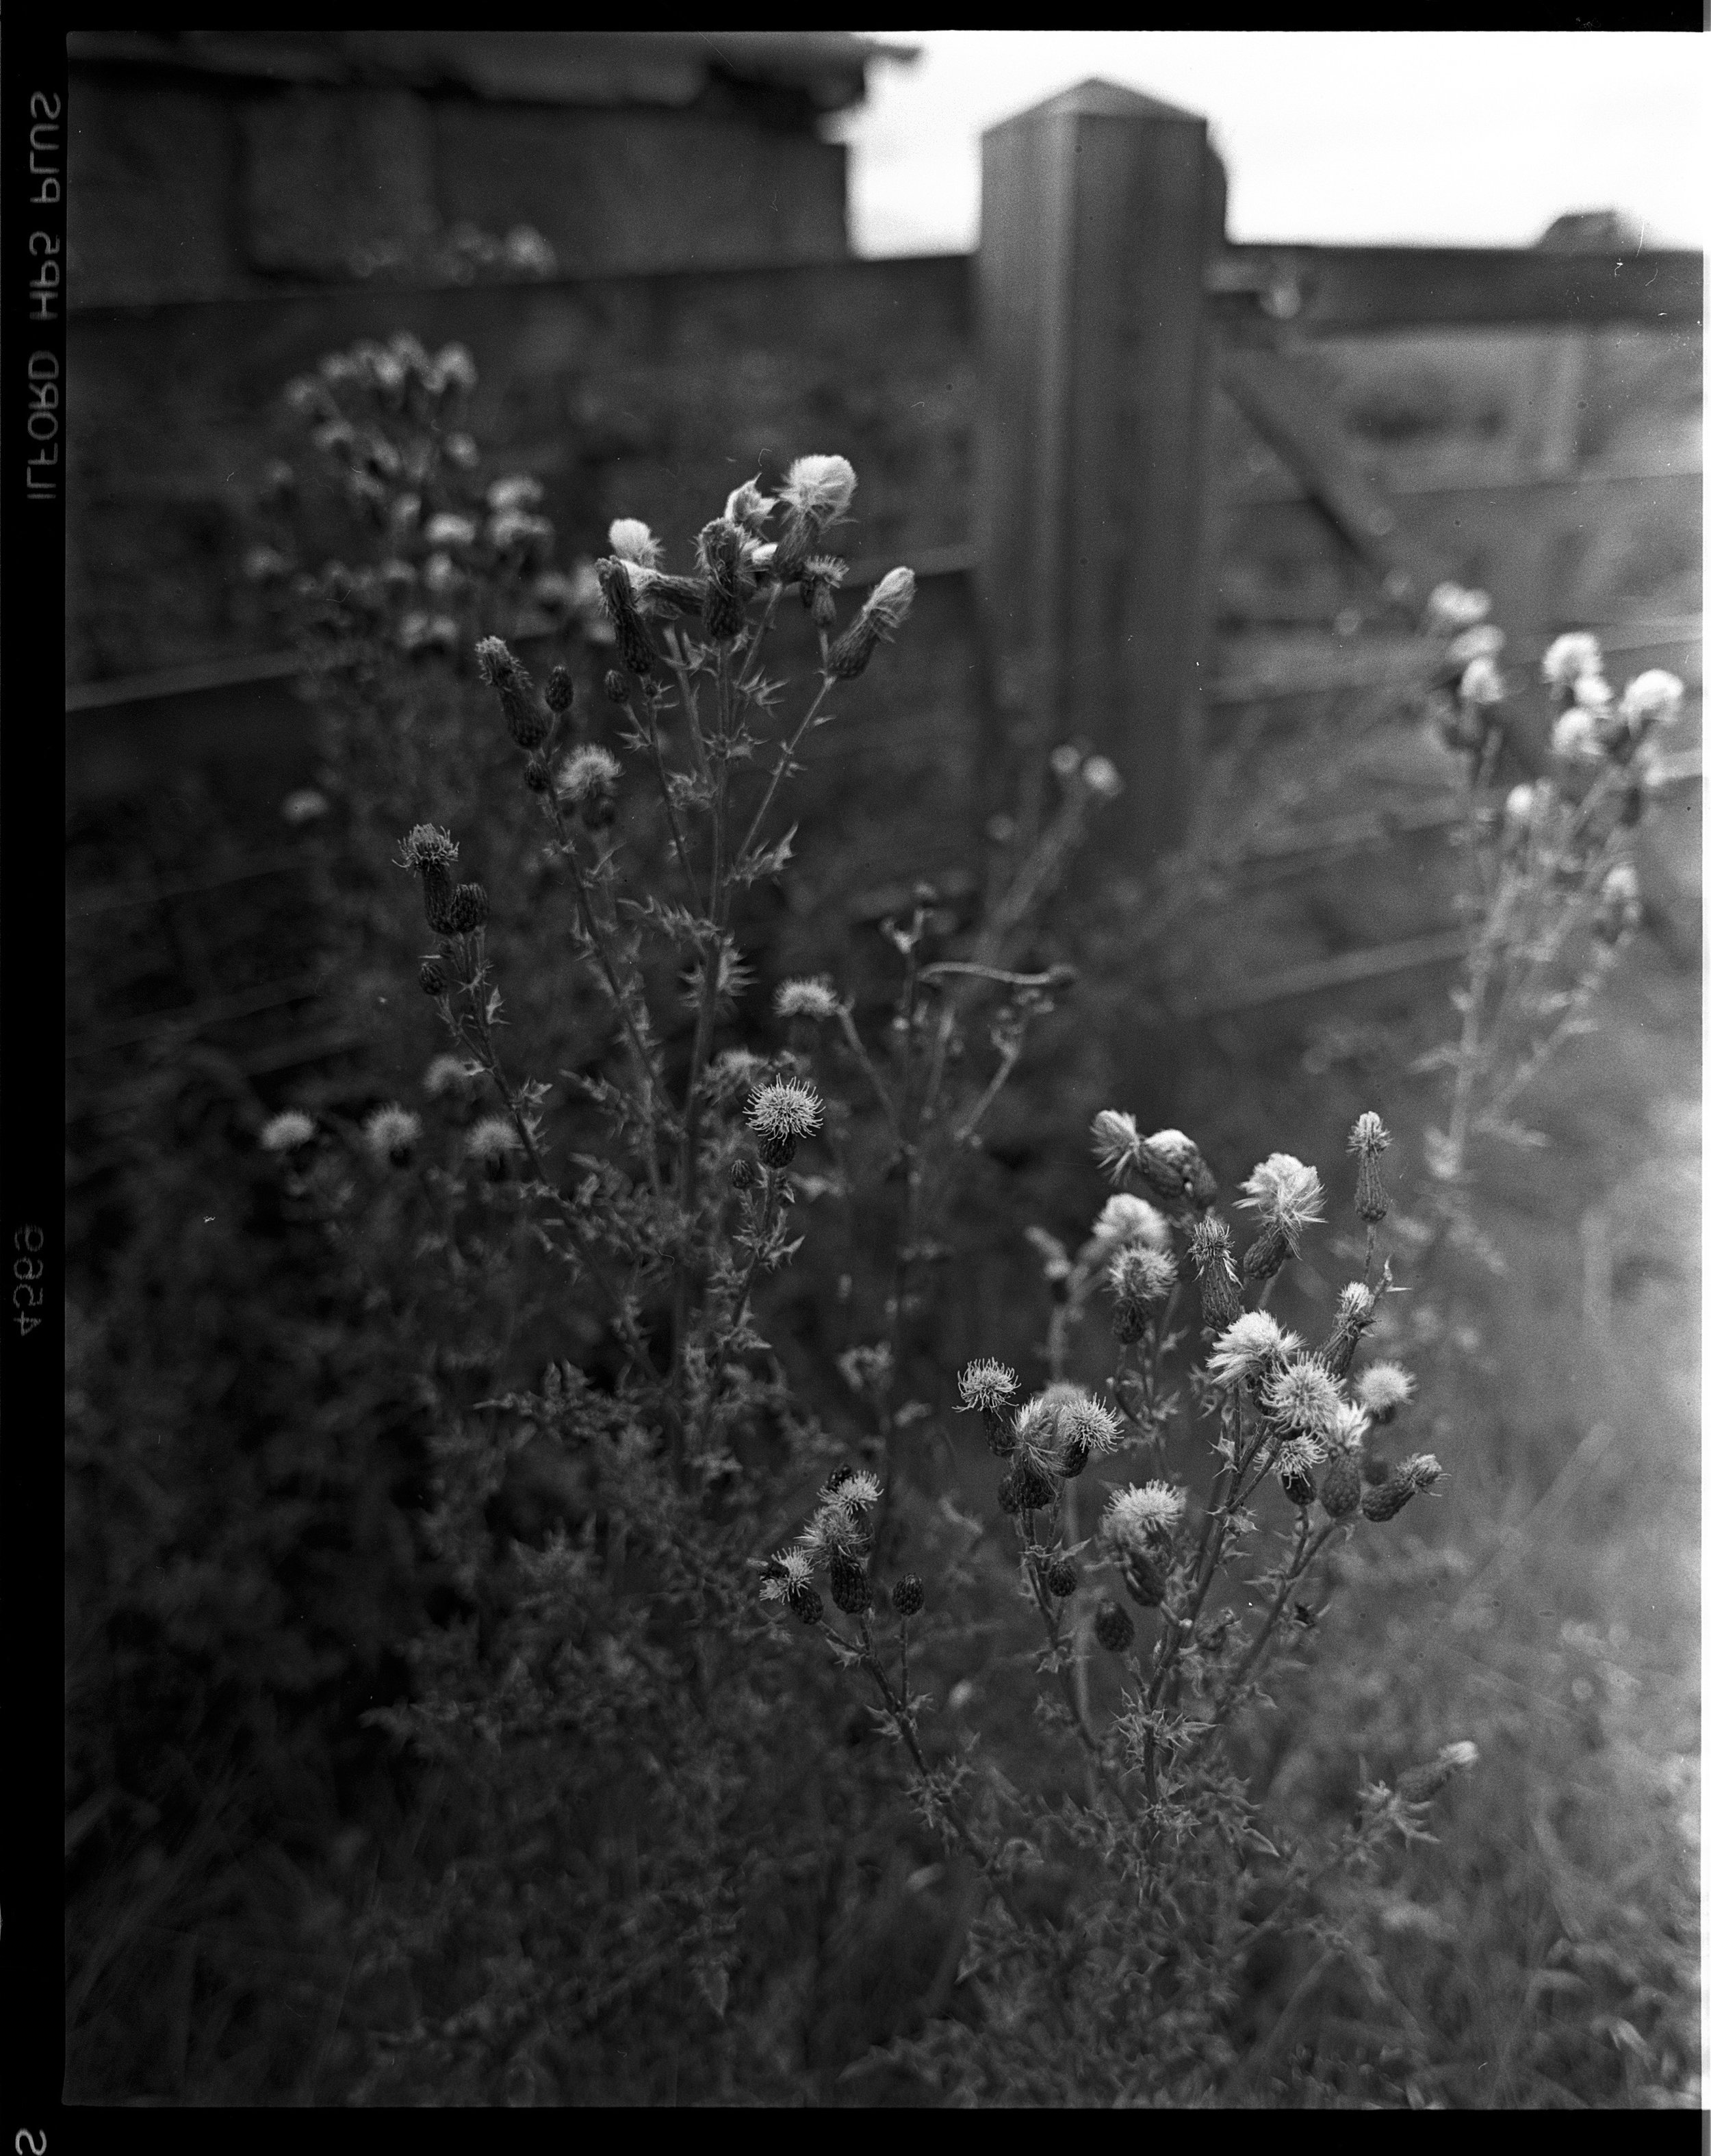 Thistle near the backdoor Ilford HP5, Pentax 67